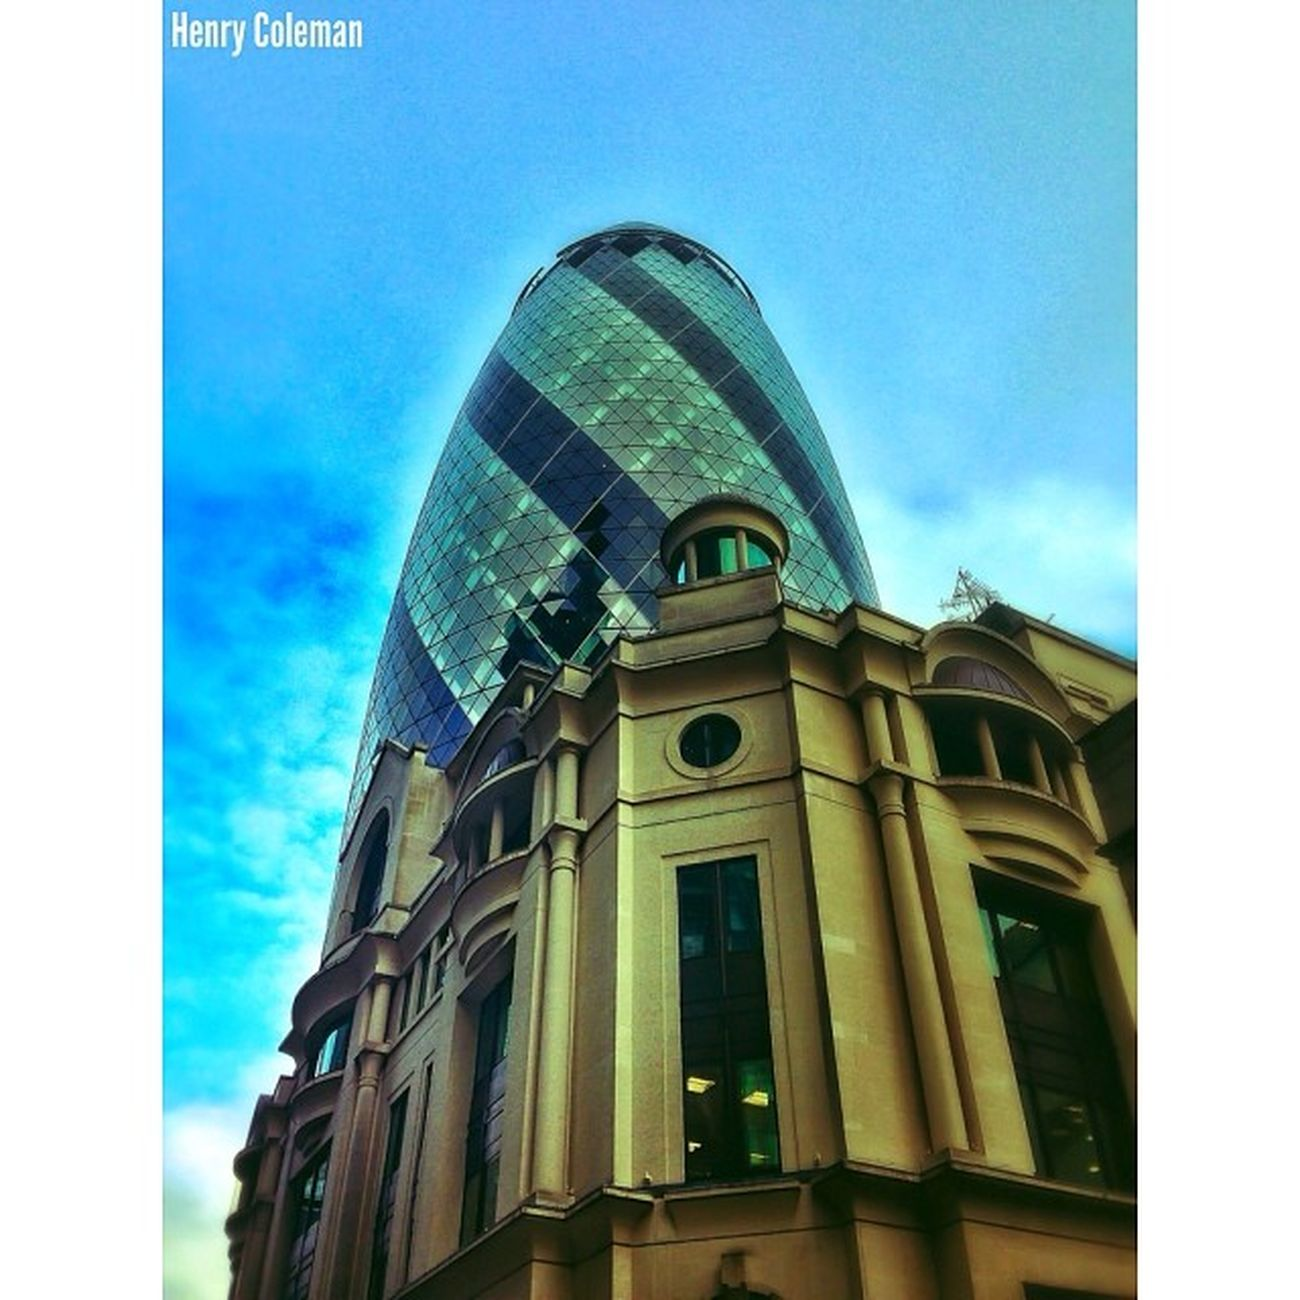 I chose this perspective as it looks like The Gherkin has been placed on top of this building. Like a giant poached egg on a cup! 3/5 5shotchallenge Deep Rich edit of the World Famous Gherkin. Udog_edit Udog_peopleandplaces Gherkin Stmarysaxe Lovelondon London London_only Londonpop London_only_members Igerslondon Ig_london Ig_england Jj_edited Ig_europe Guesstination Streetshot_london Internationalgrammers The_photographers_emporium Rising_masters Icu_britain Streetshot_london Splendid_editz